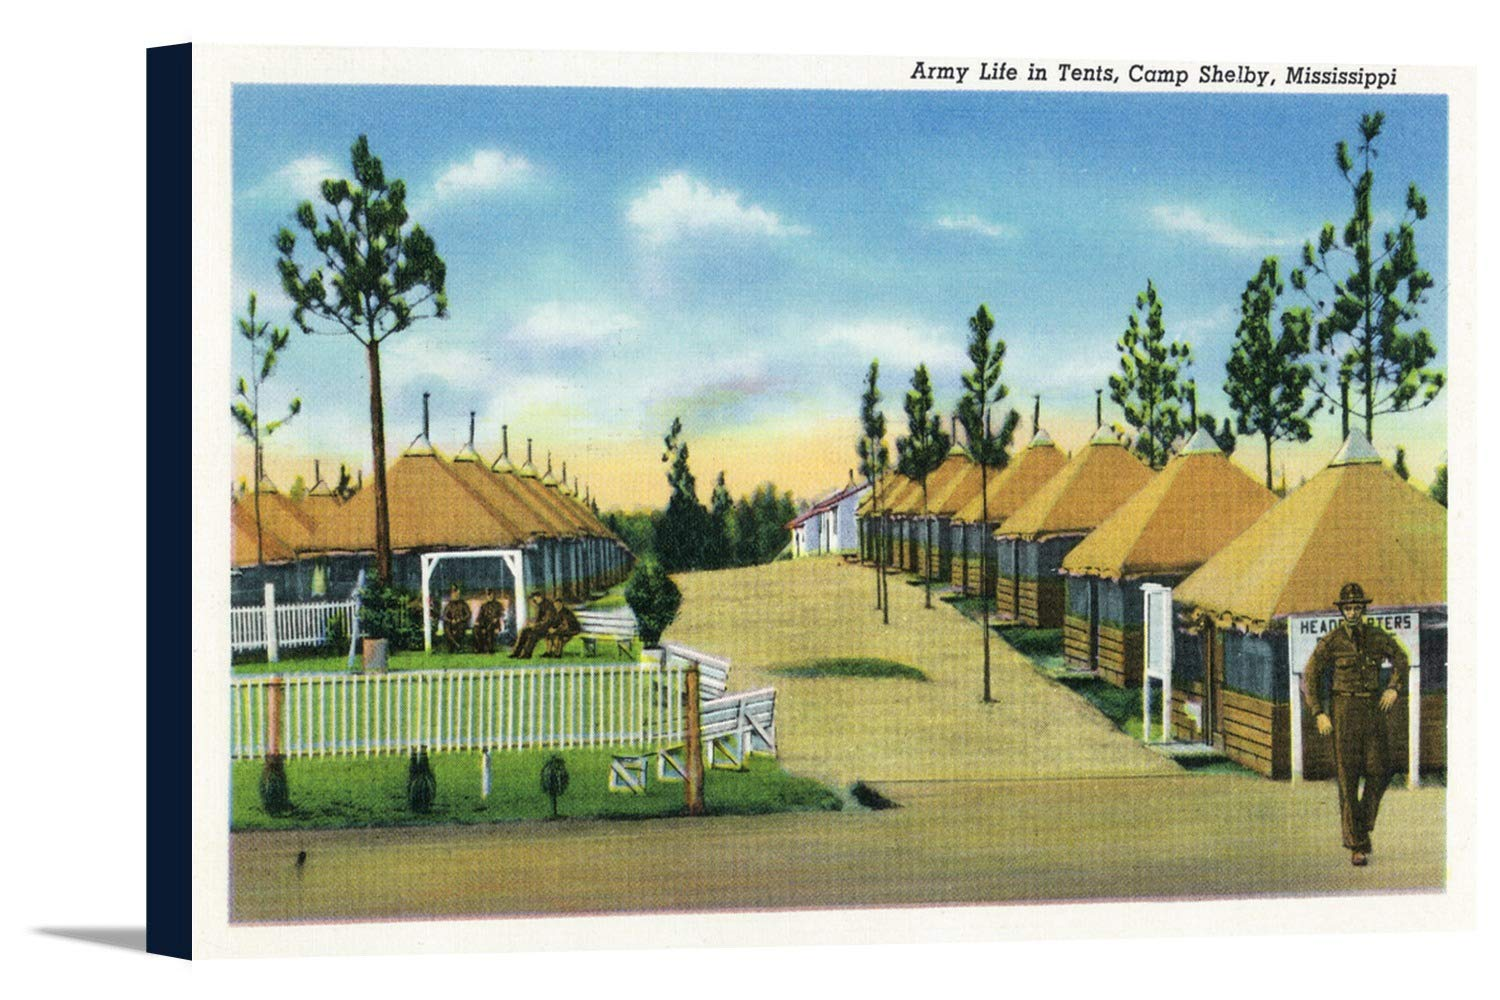 Amazon com: Camp Shelby, Mississippi - View of Army Life in